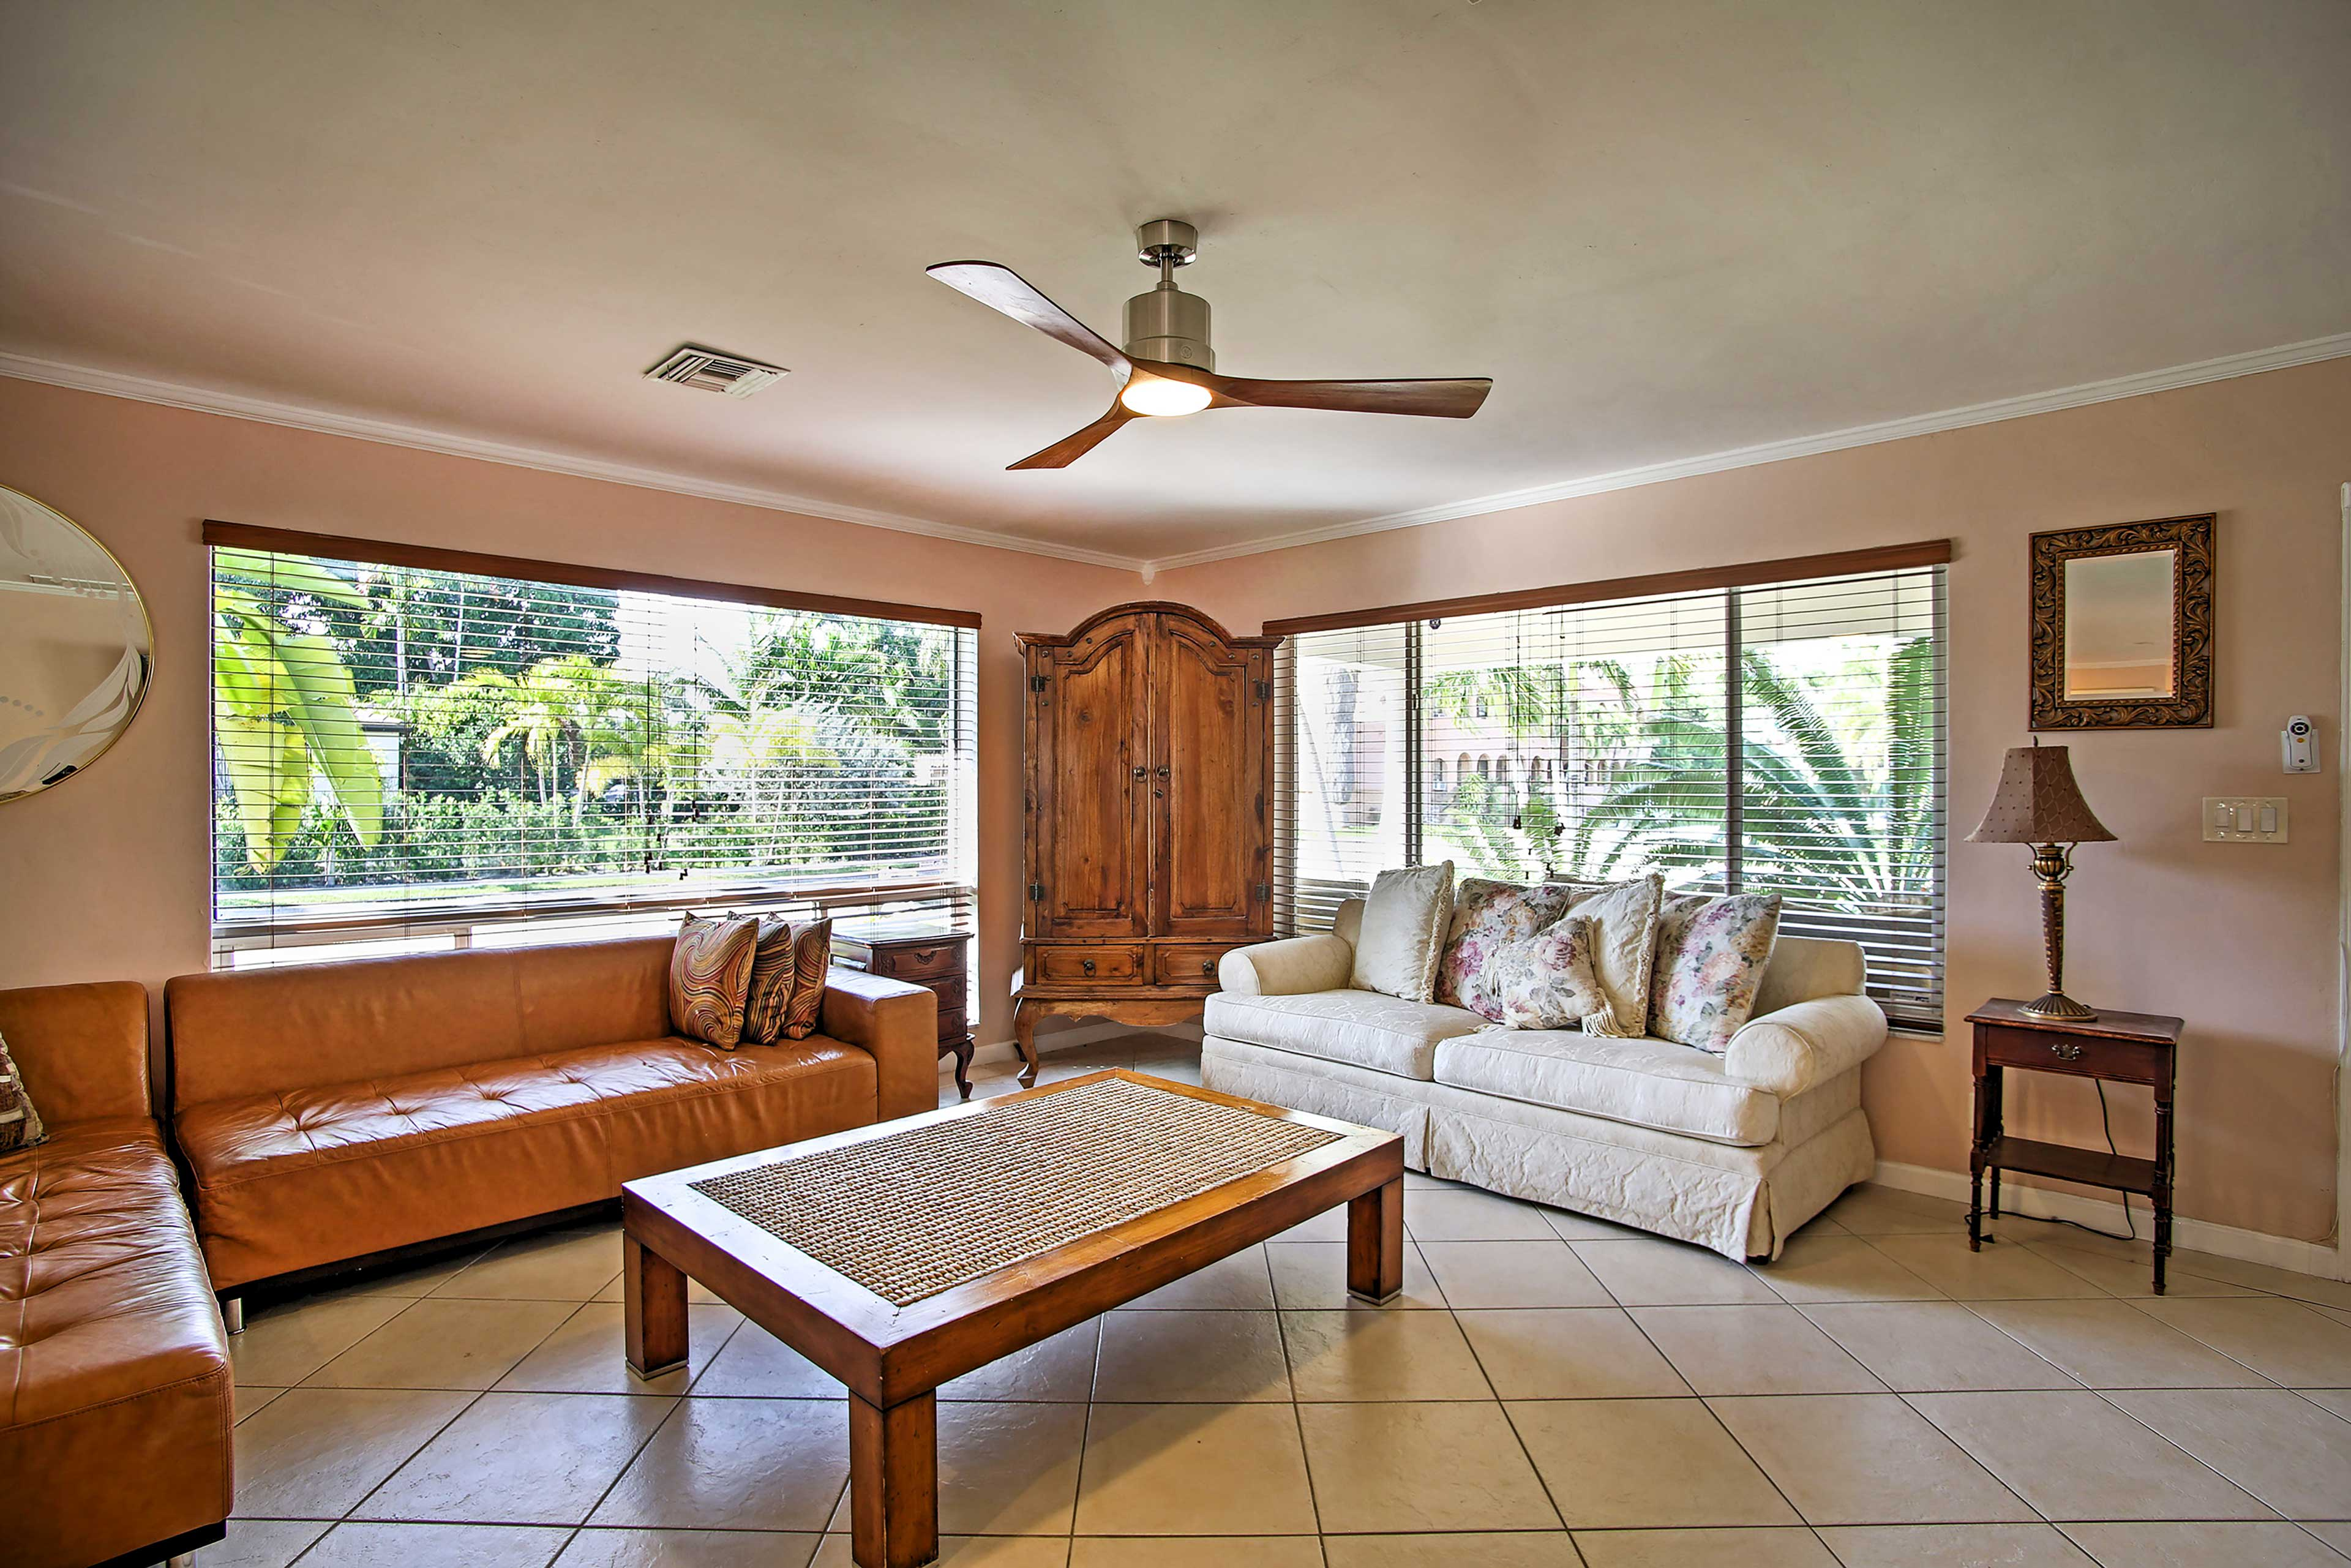 Ceiling fans will keep you nice and cool during your stay.